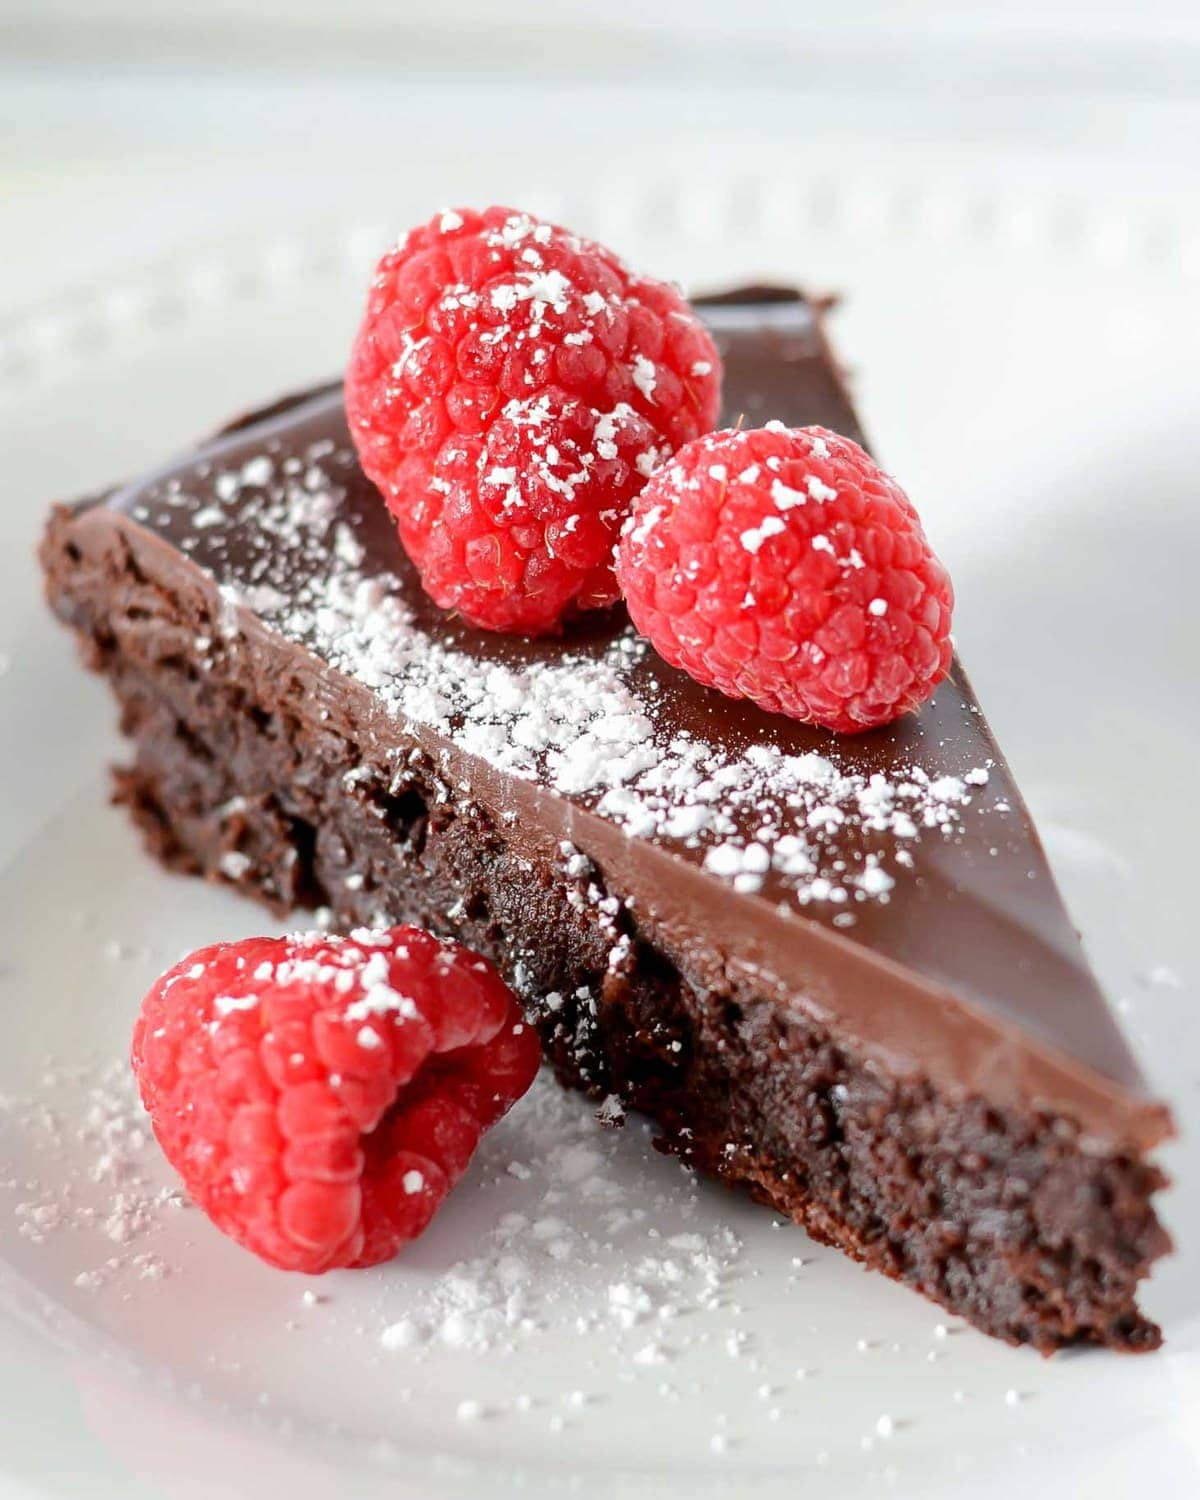 Best Flourless Chocolate Cake topped with raspberries and powdered sugar